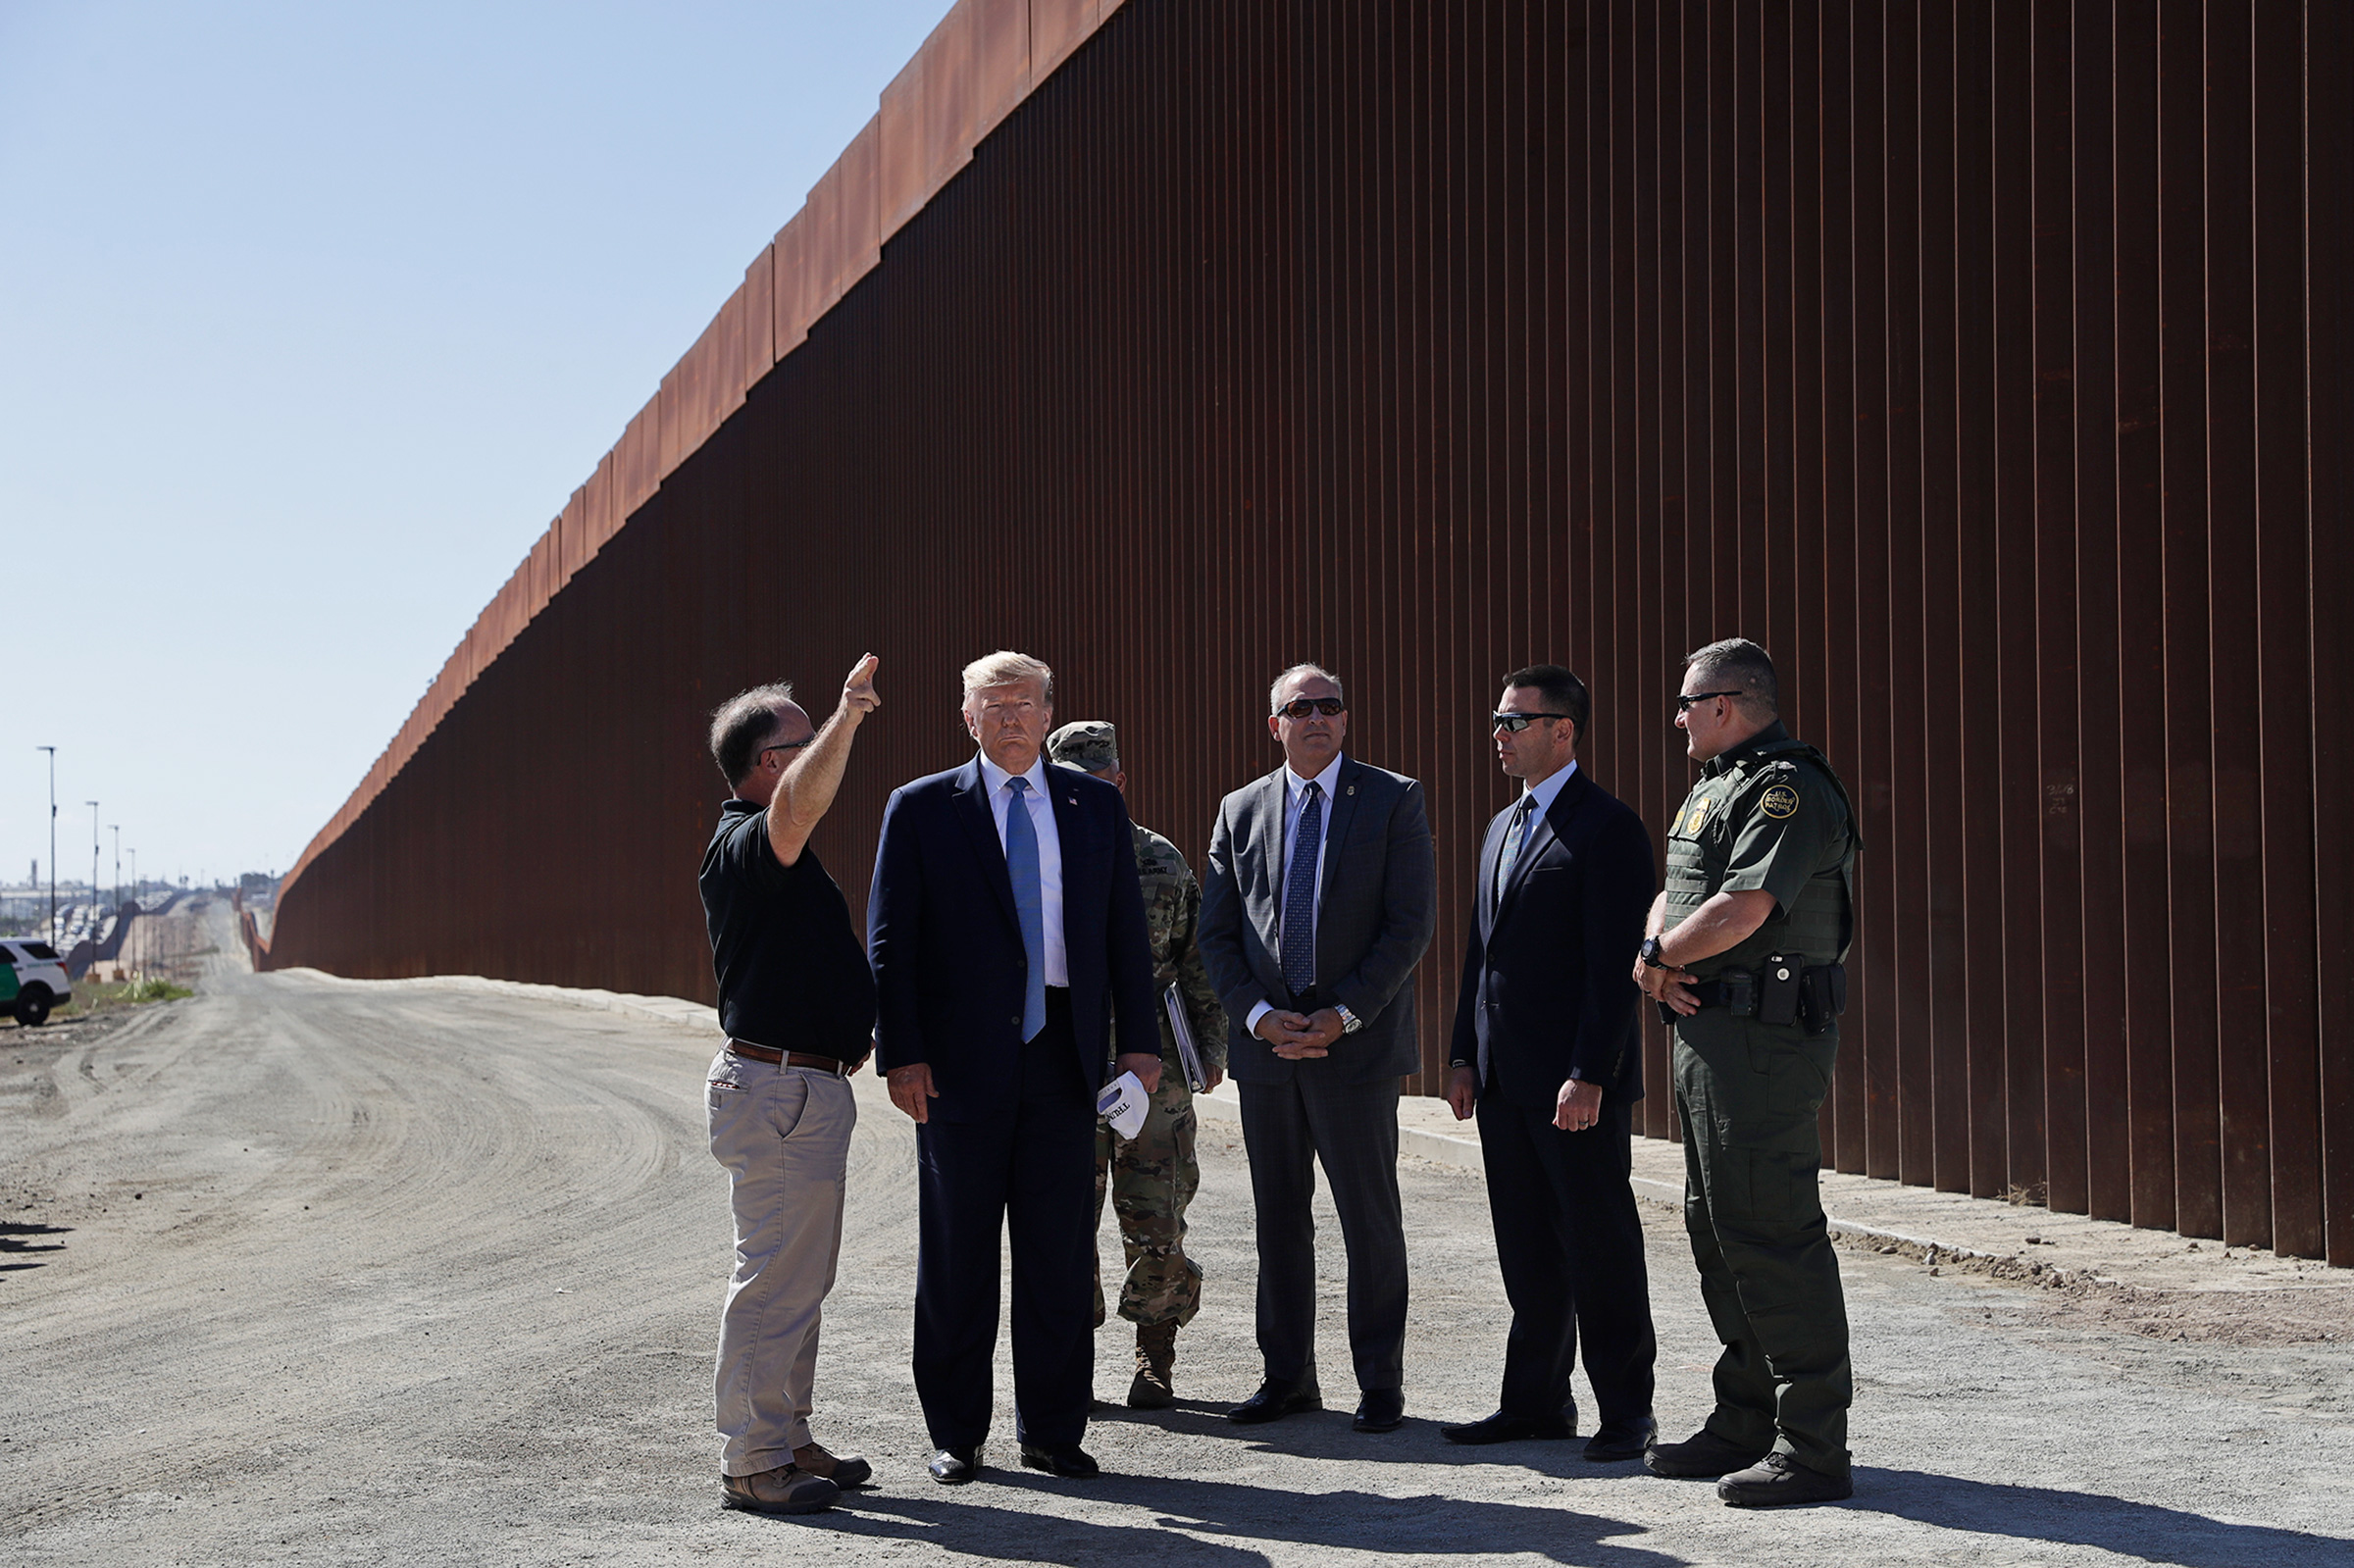 Trump tours a section of the border wall in Otay Mesa, Calif., on Sept. 18, 2019